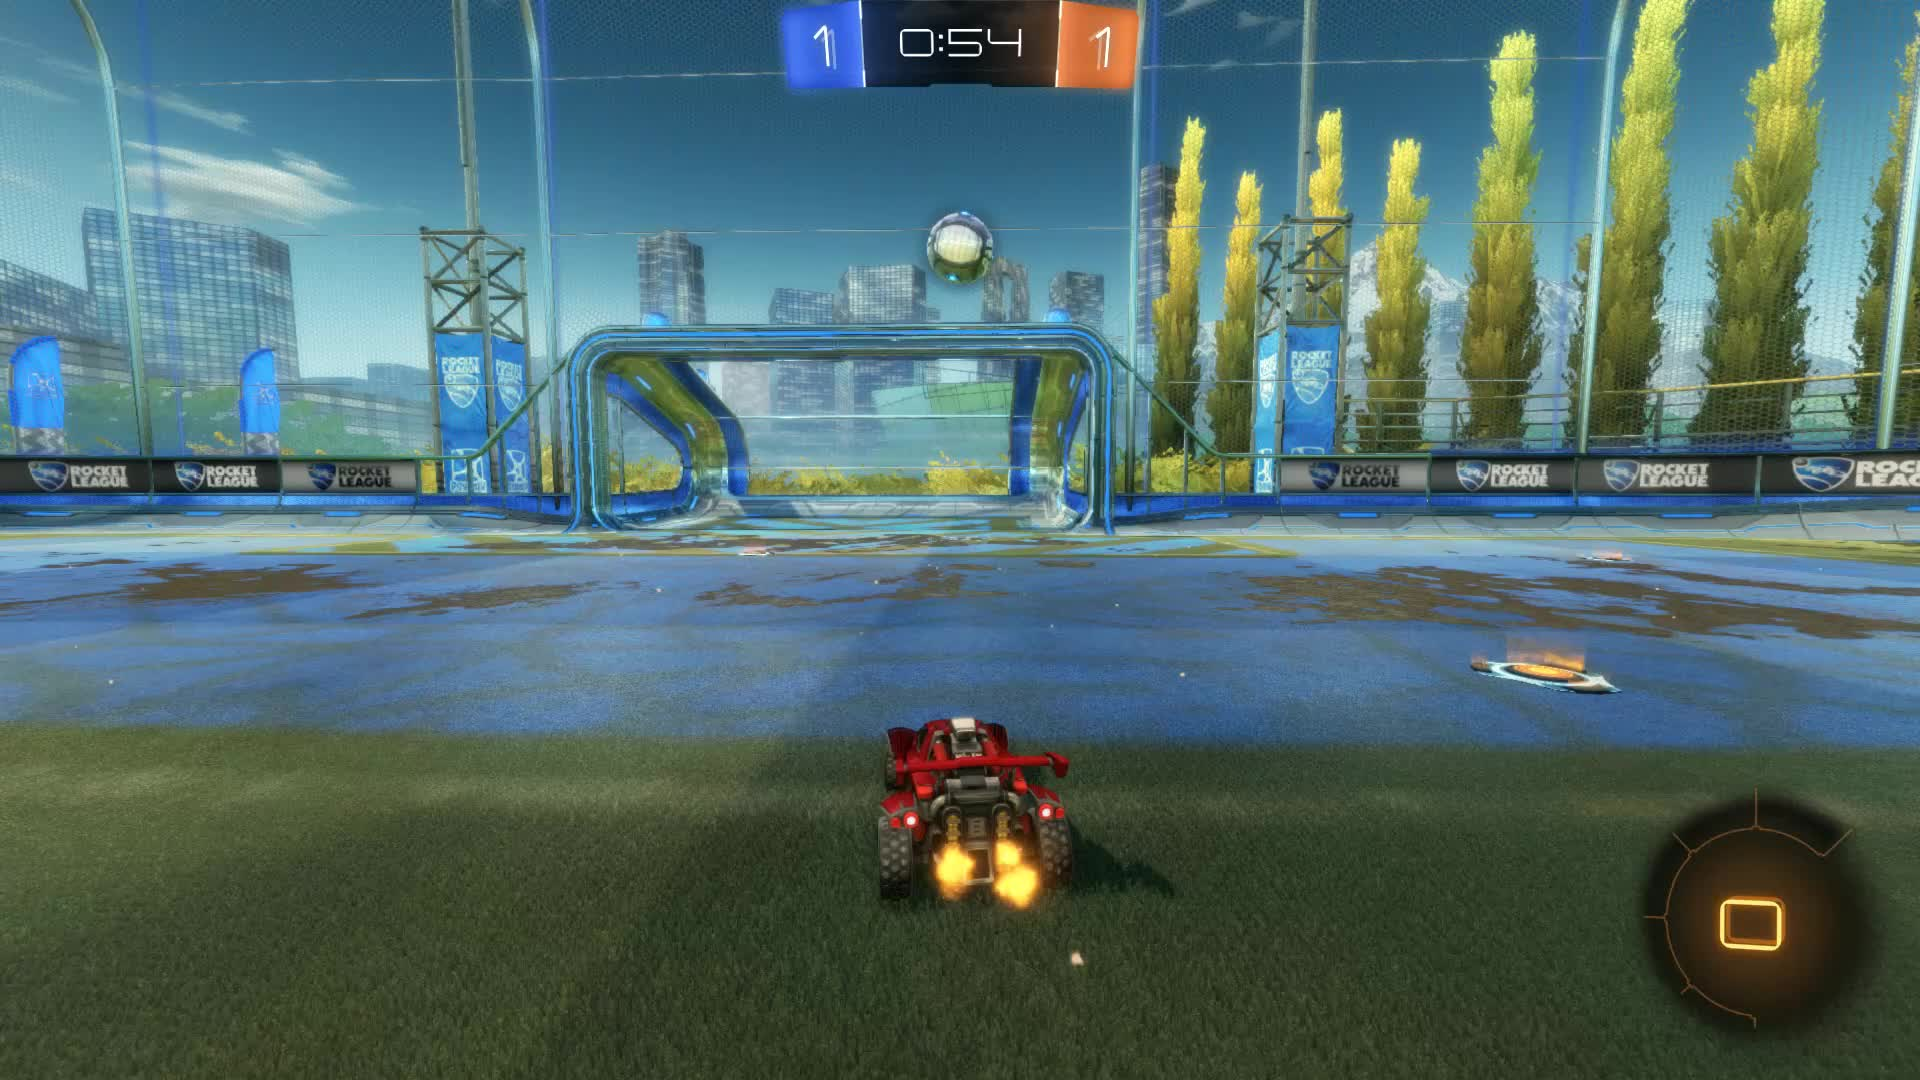 Gif Your Game, GifYourGame, Goal, Lollipop313, Rocket League, RocketLeague, ⏱️ Goal 3: Lollipop313 GIFs